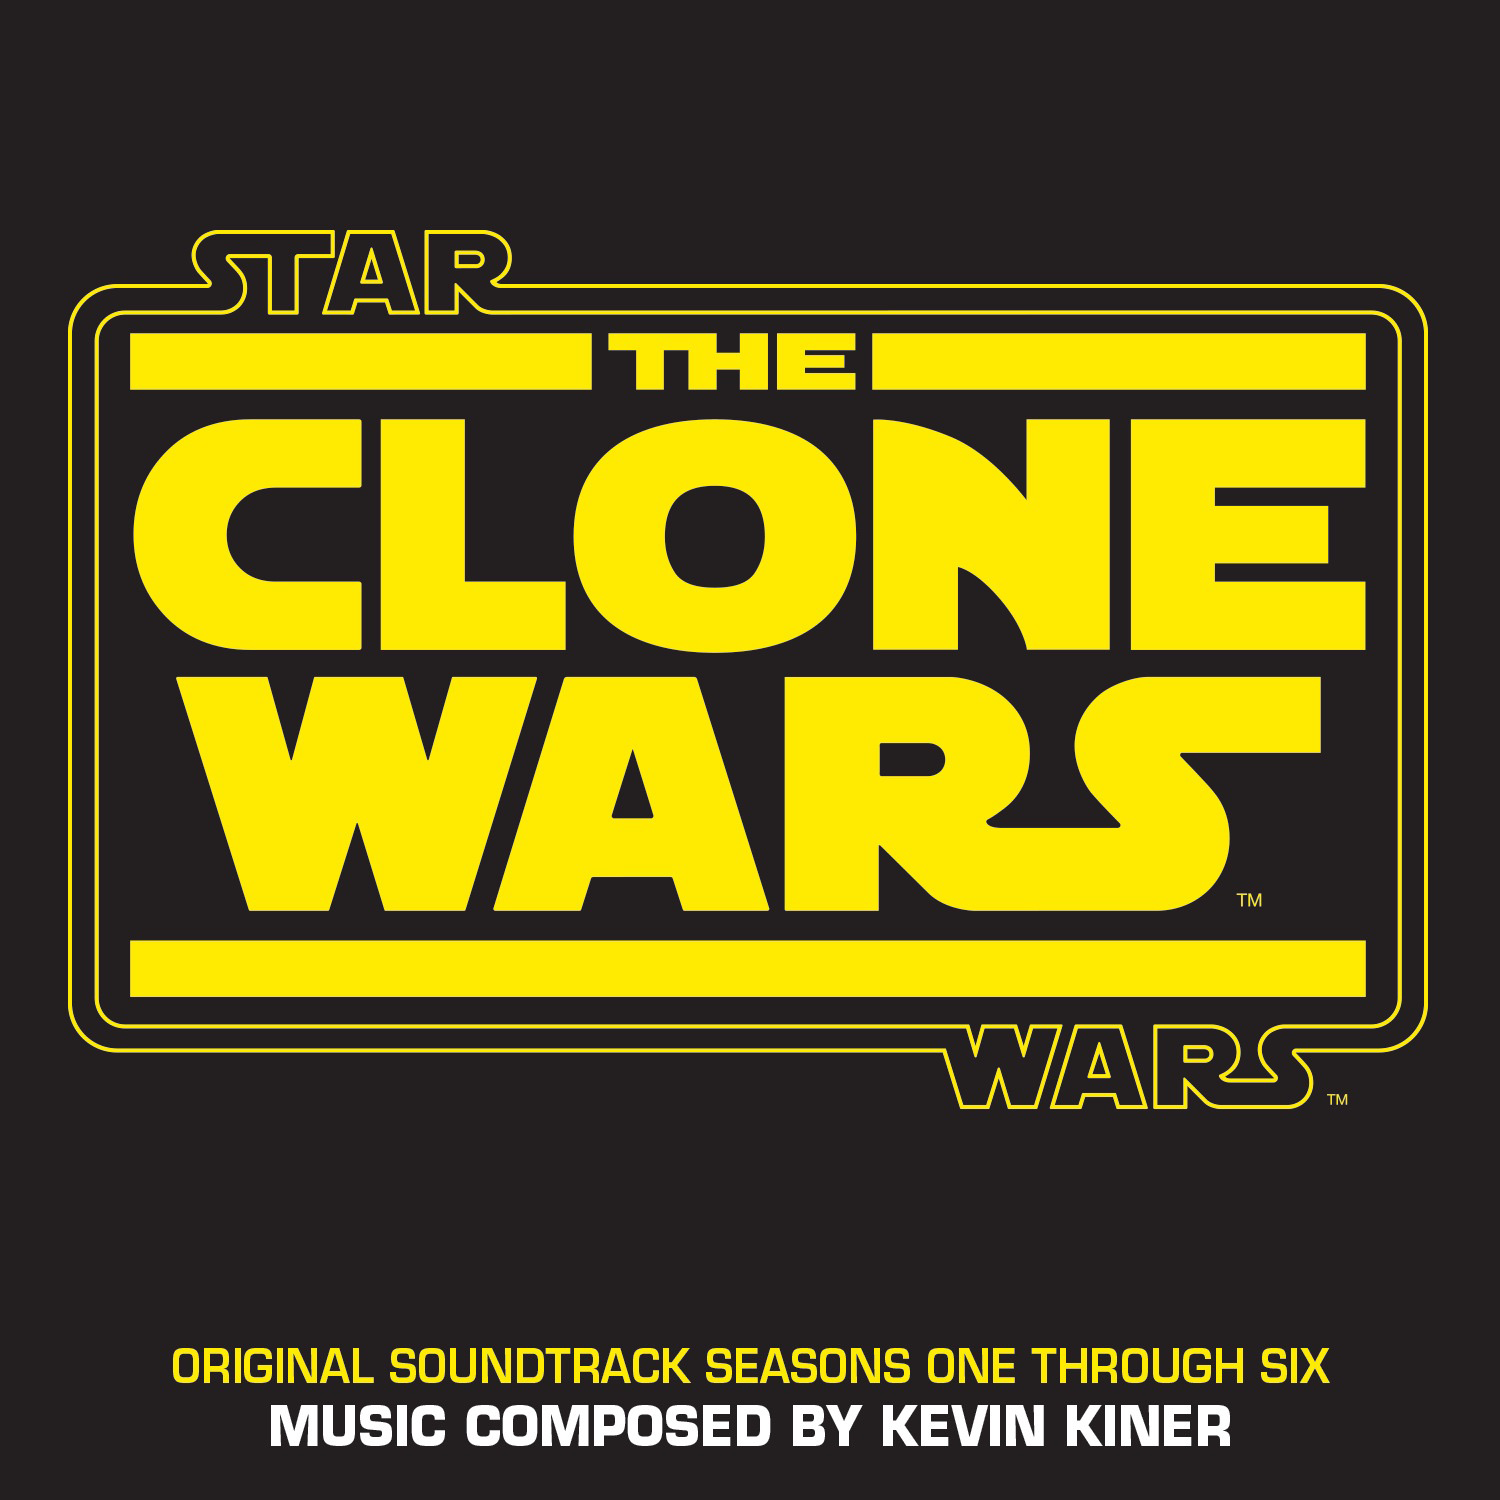 Star Wars The Clone Wars Original Soundtrack Seasons